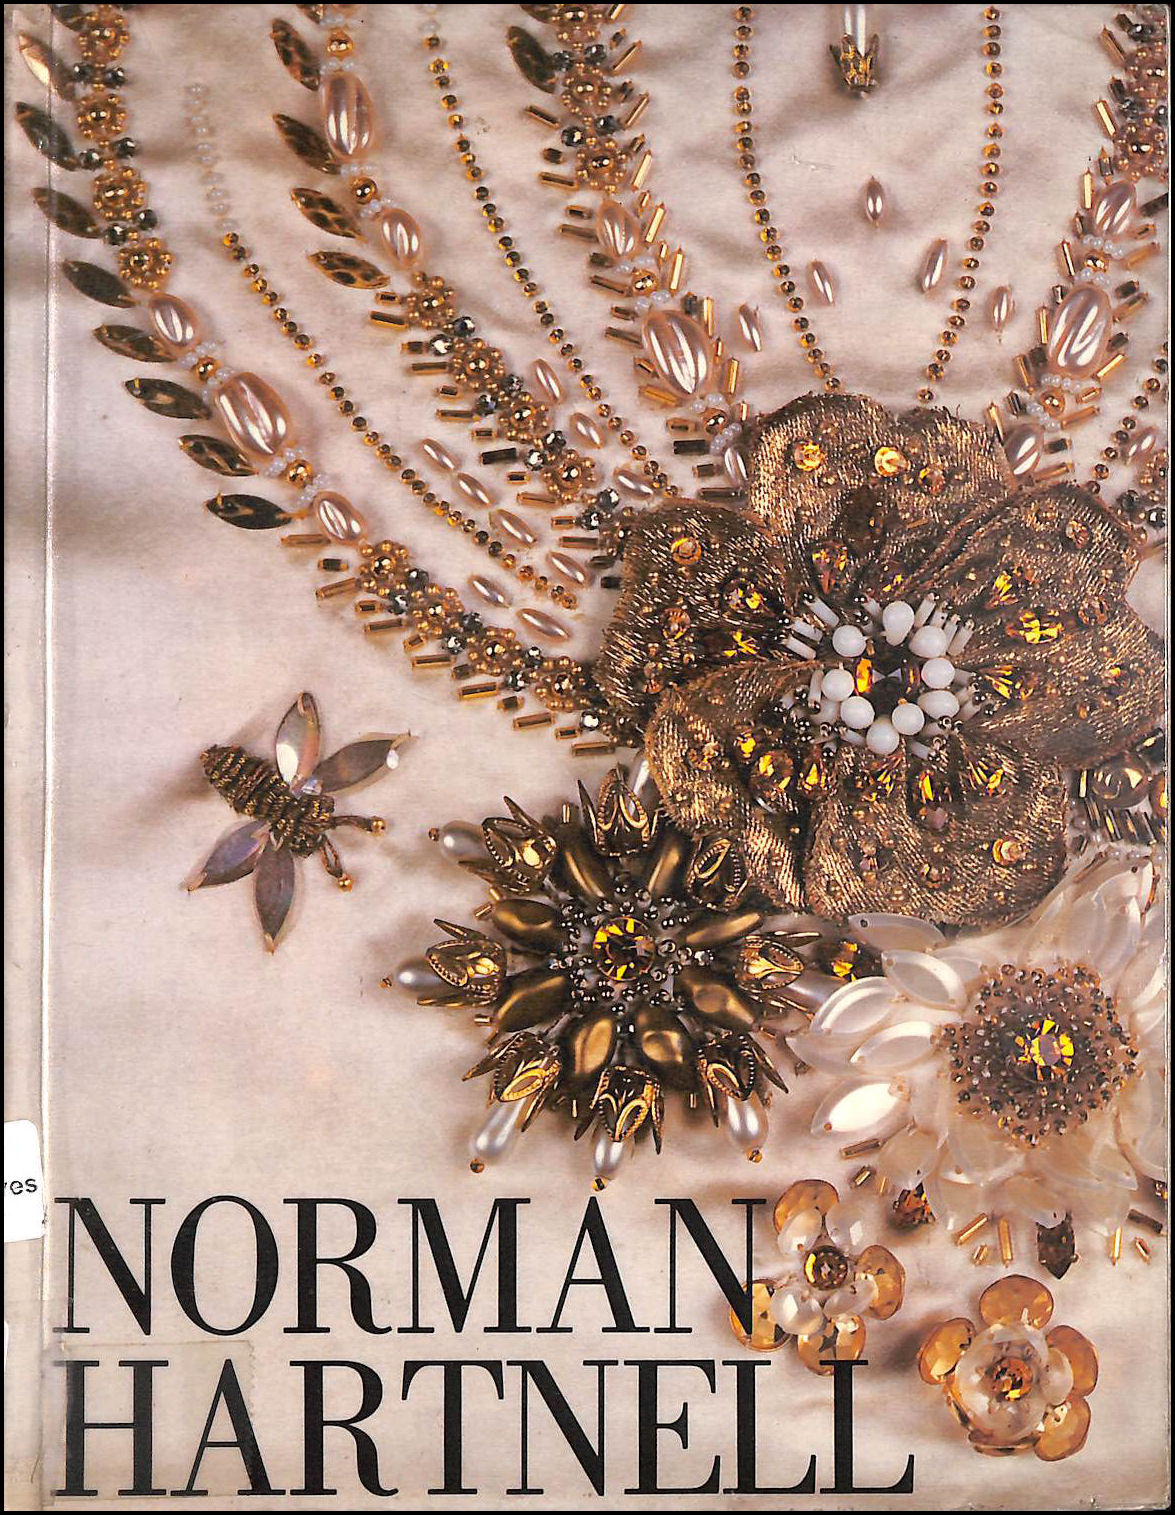 Hartnell, Norman, 1901-79, Unnamed